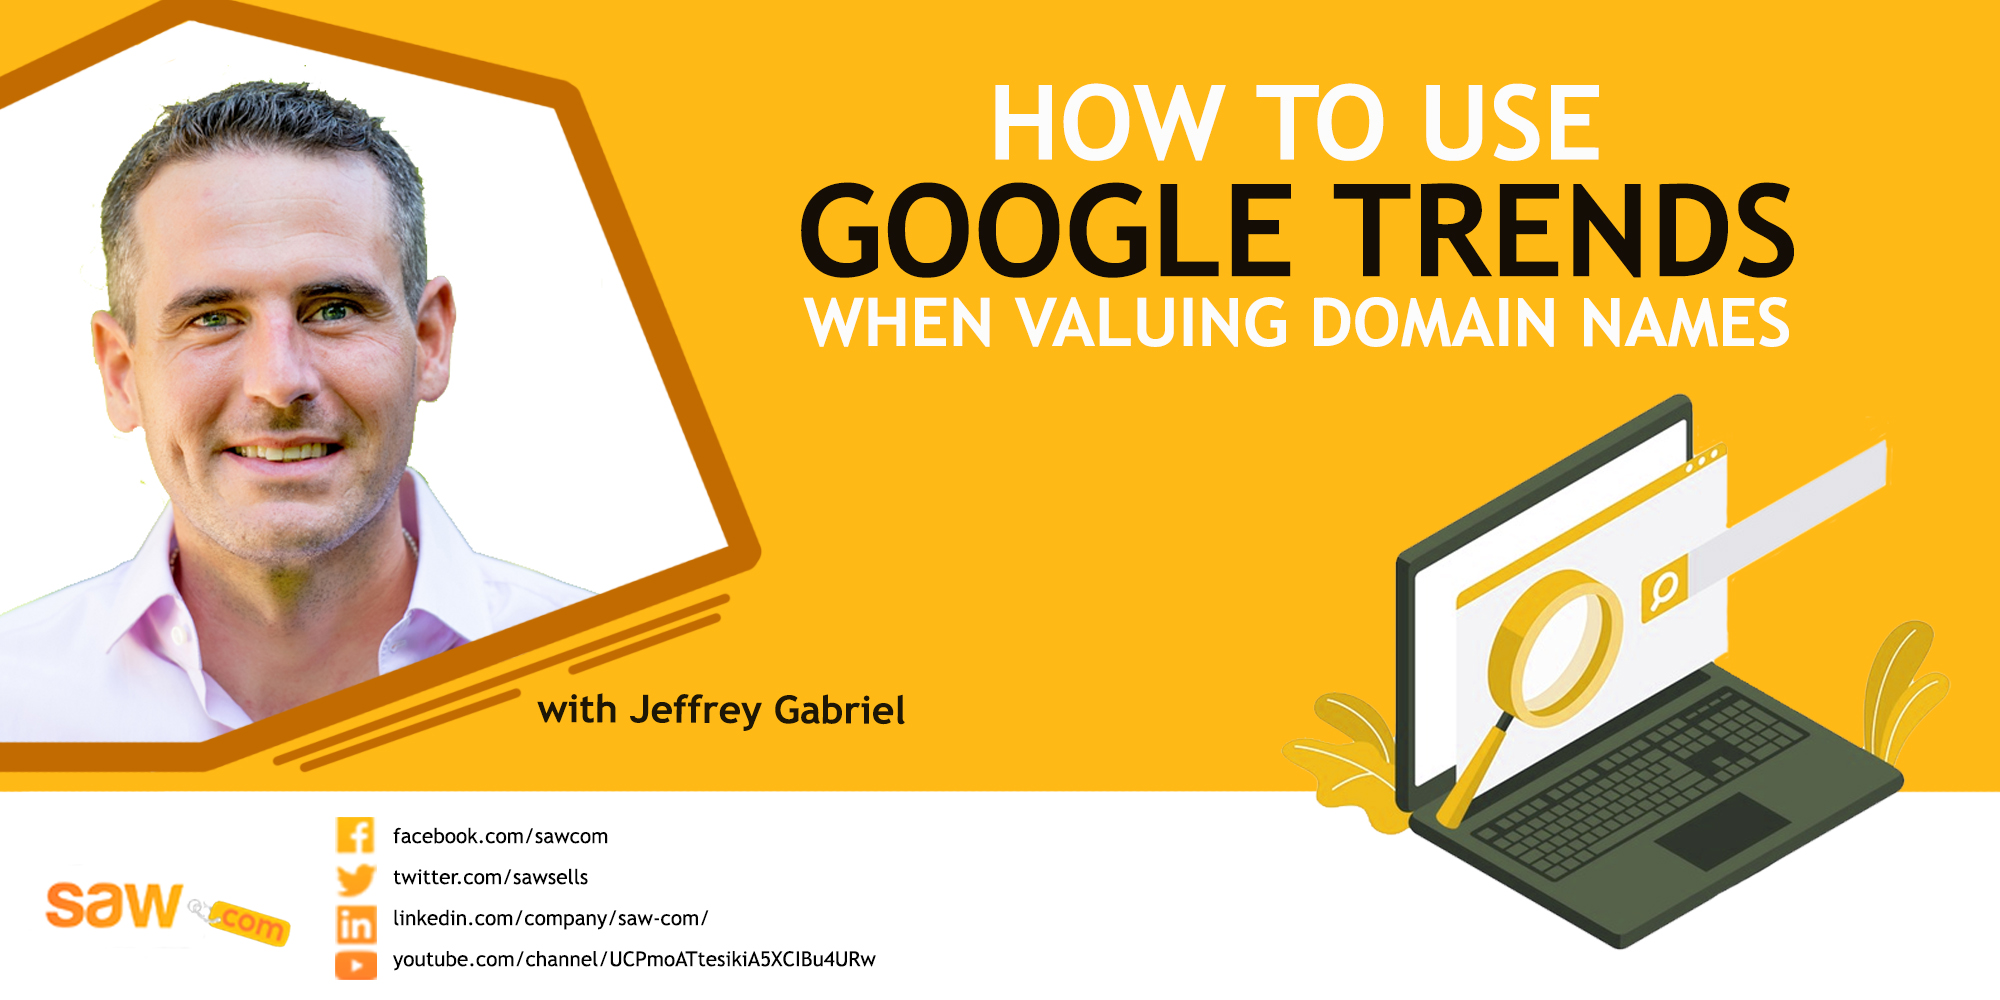 How to use Google Trends when valuing domain names.